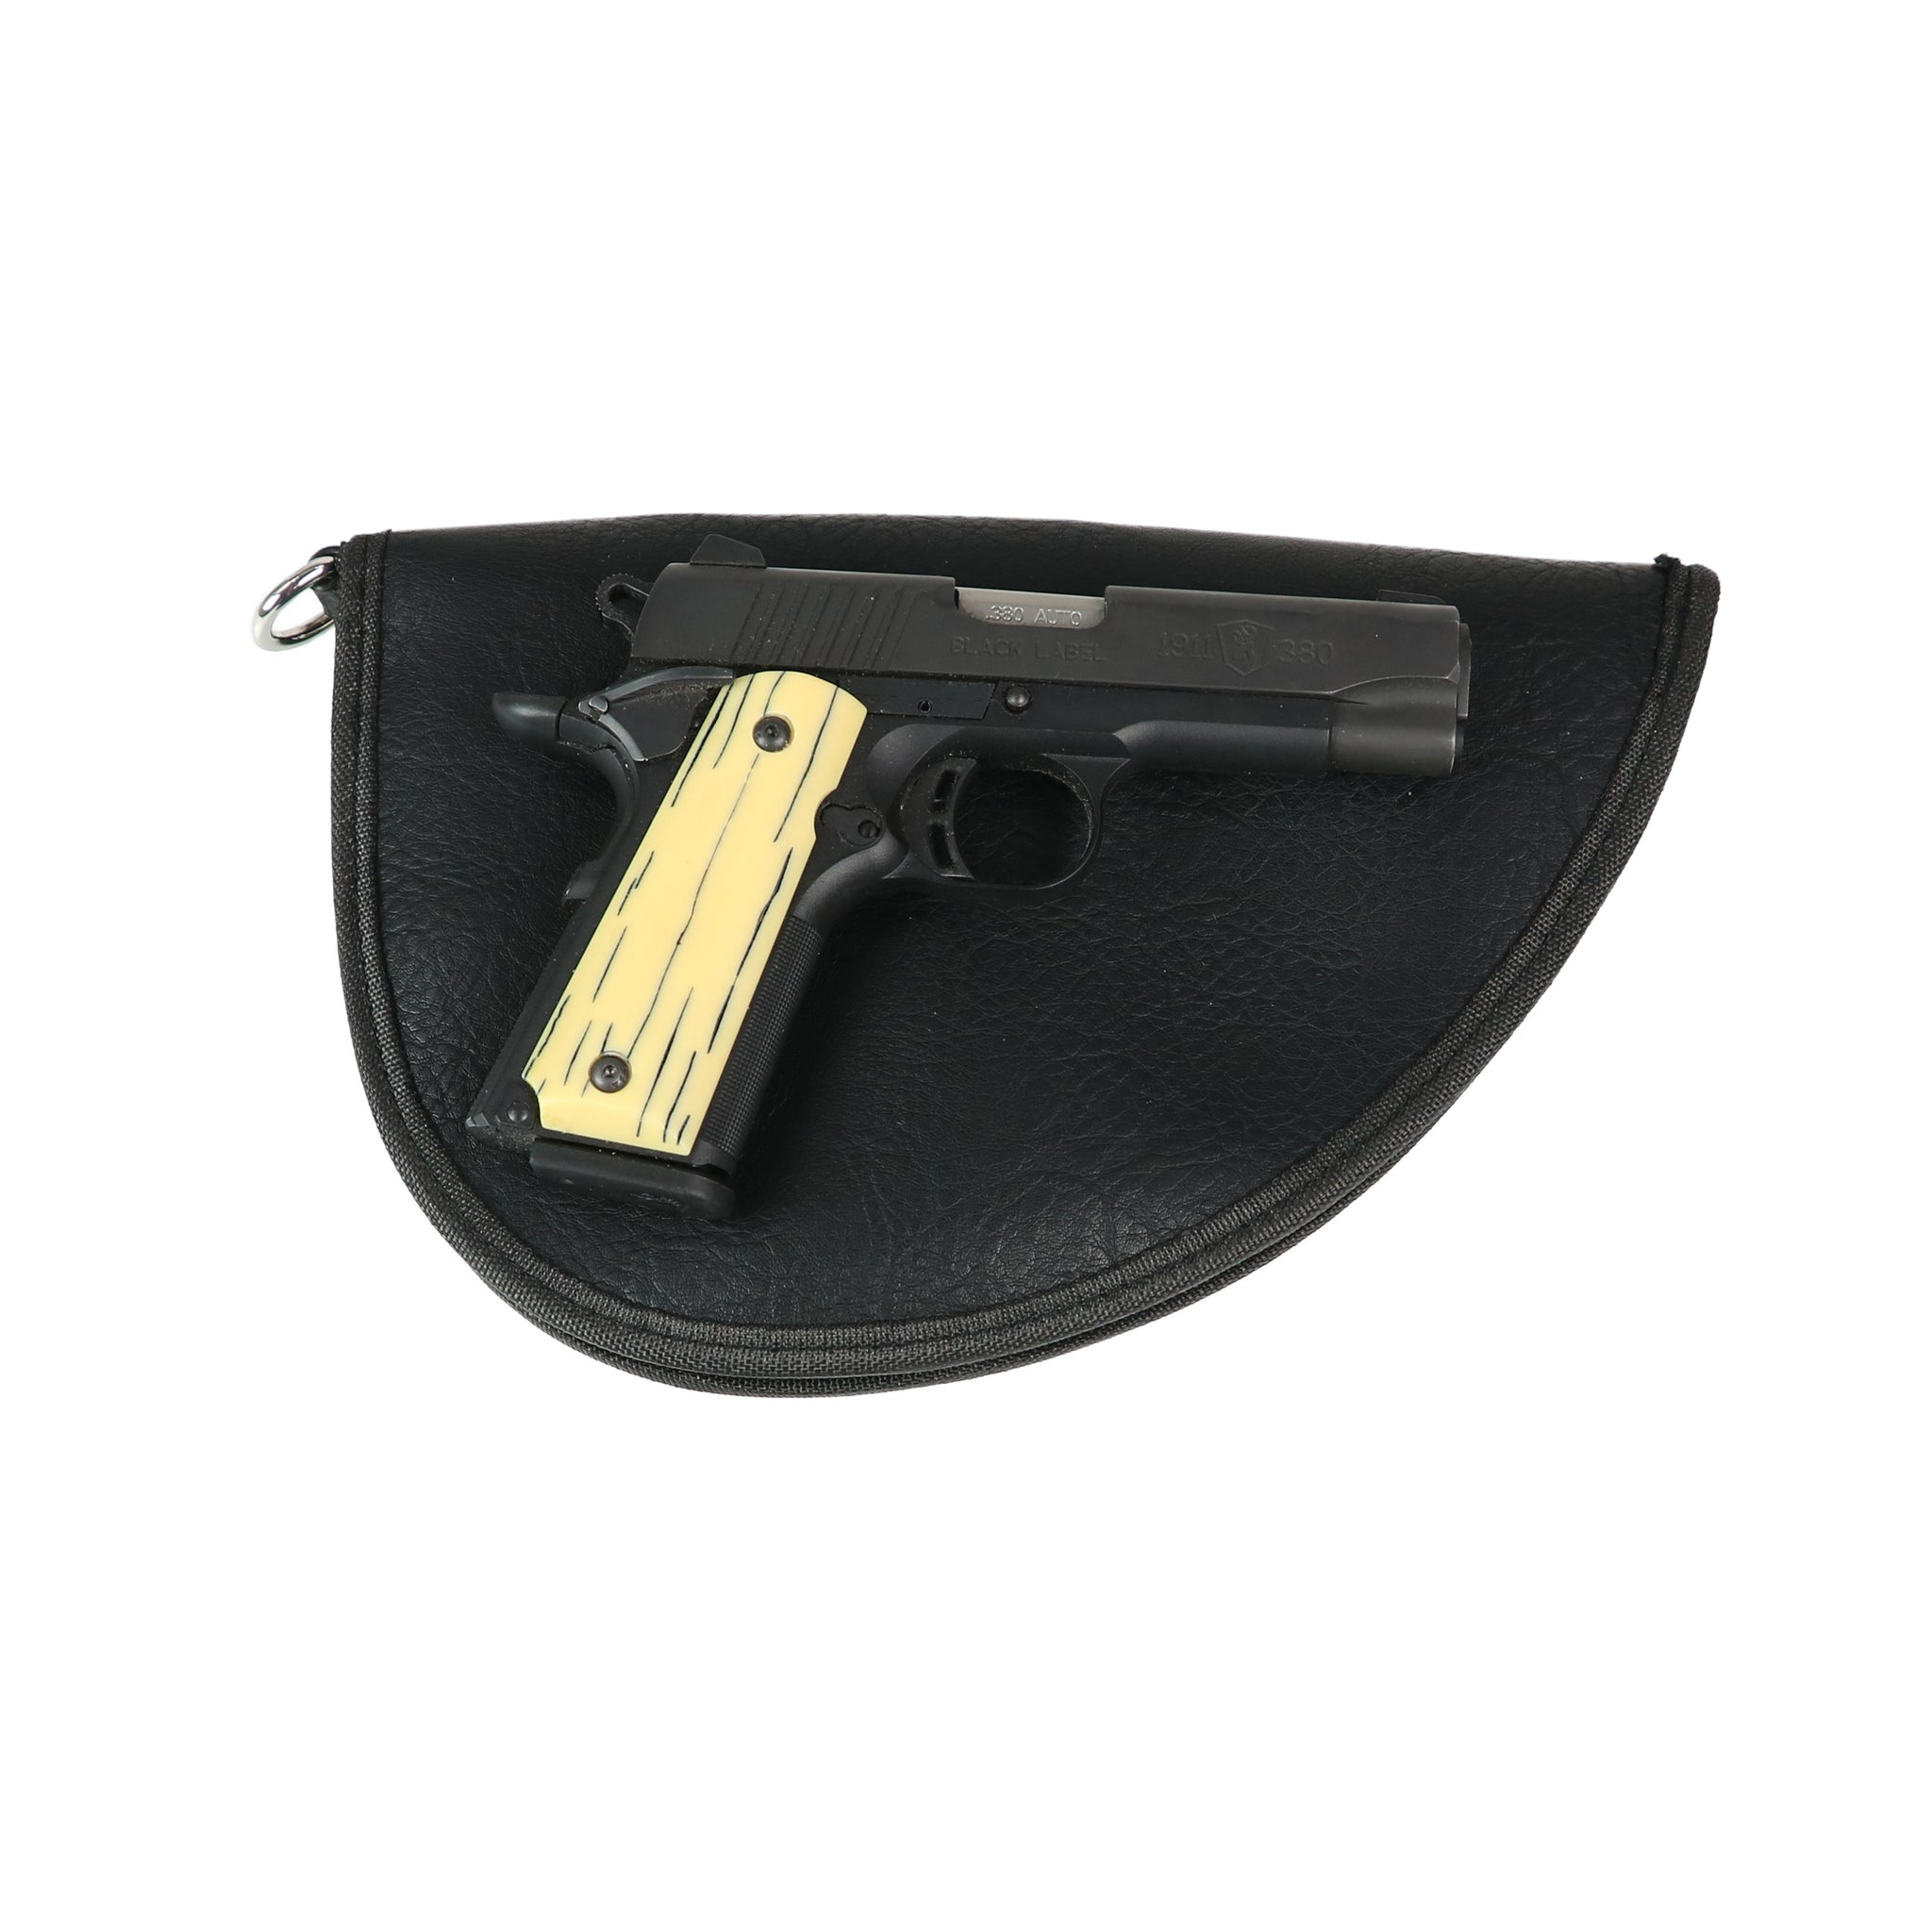 Medium Soft Pistol Gun Case